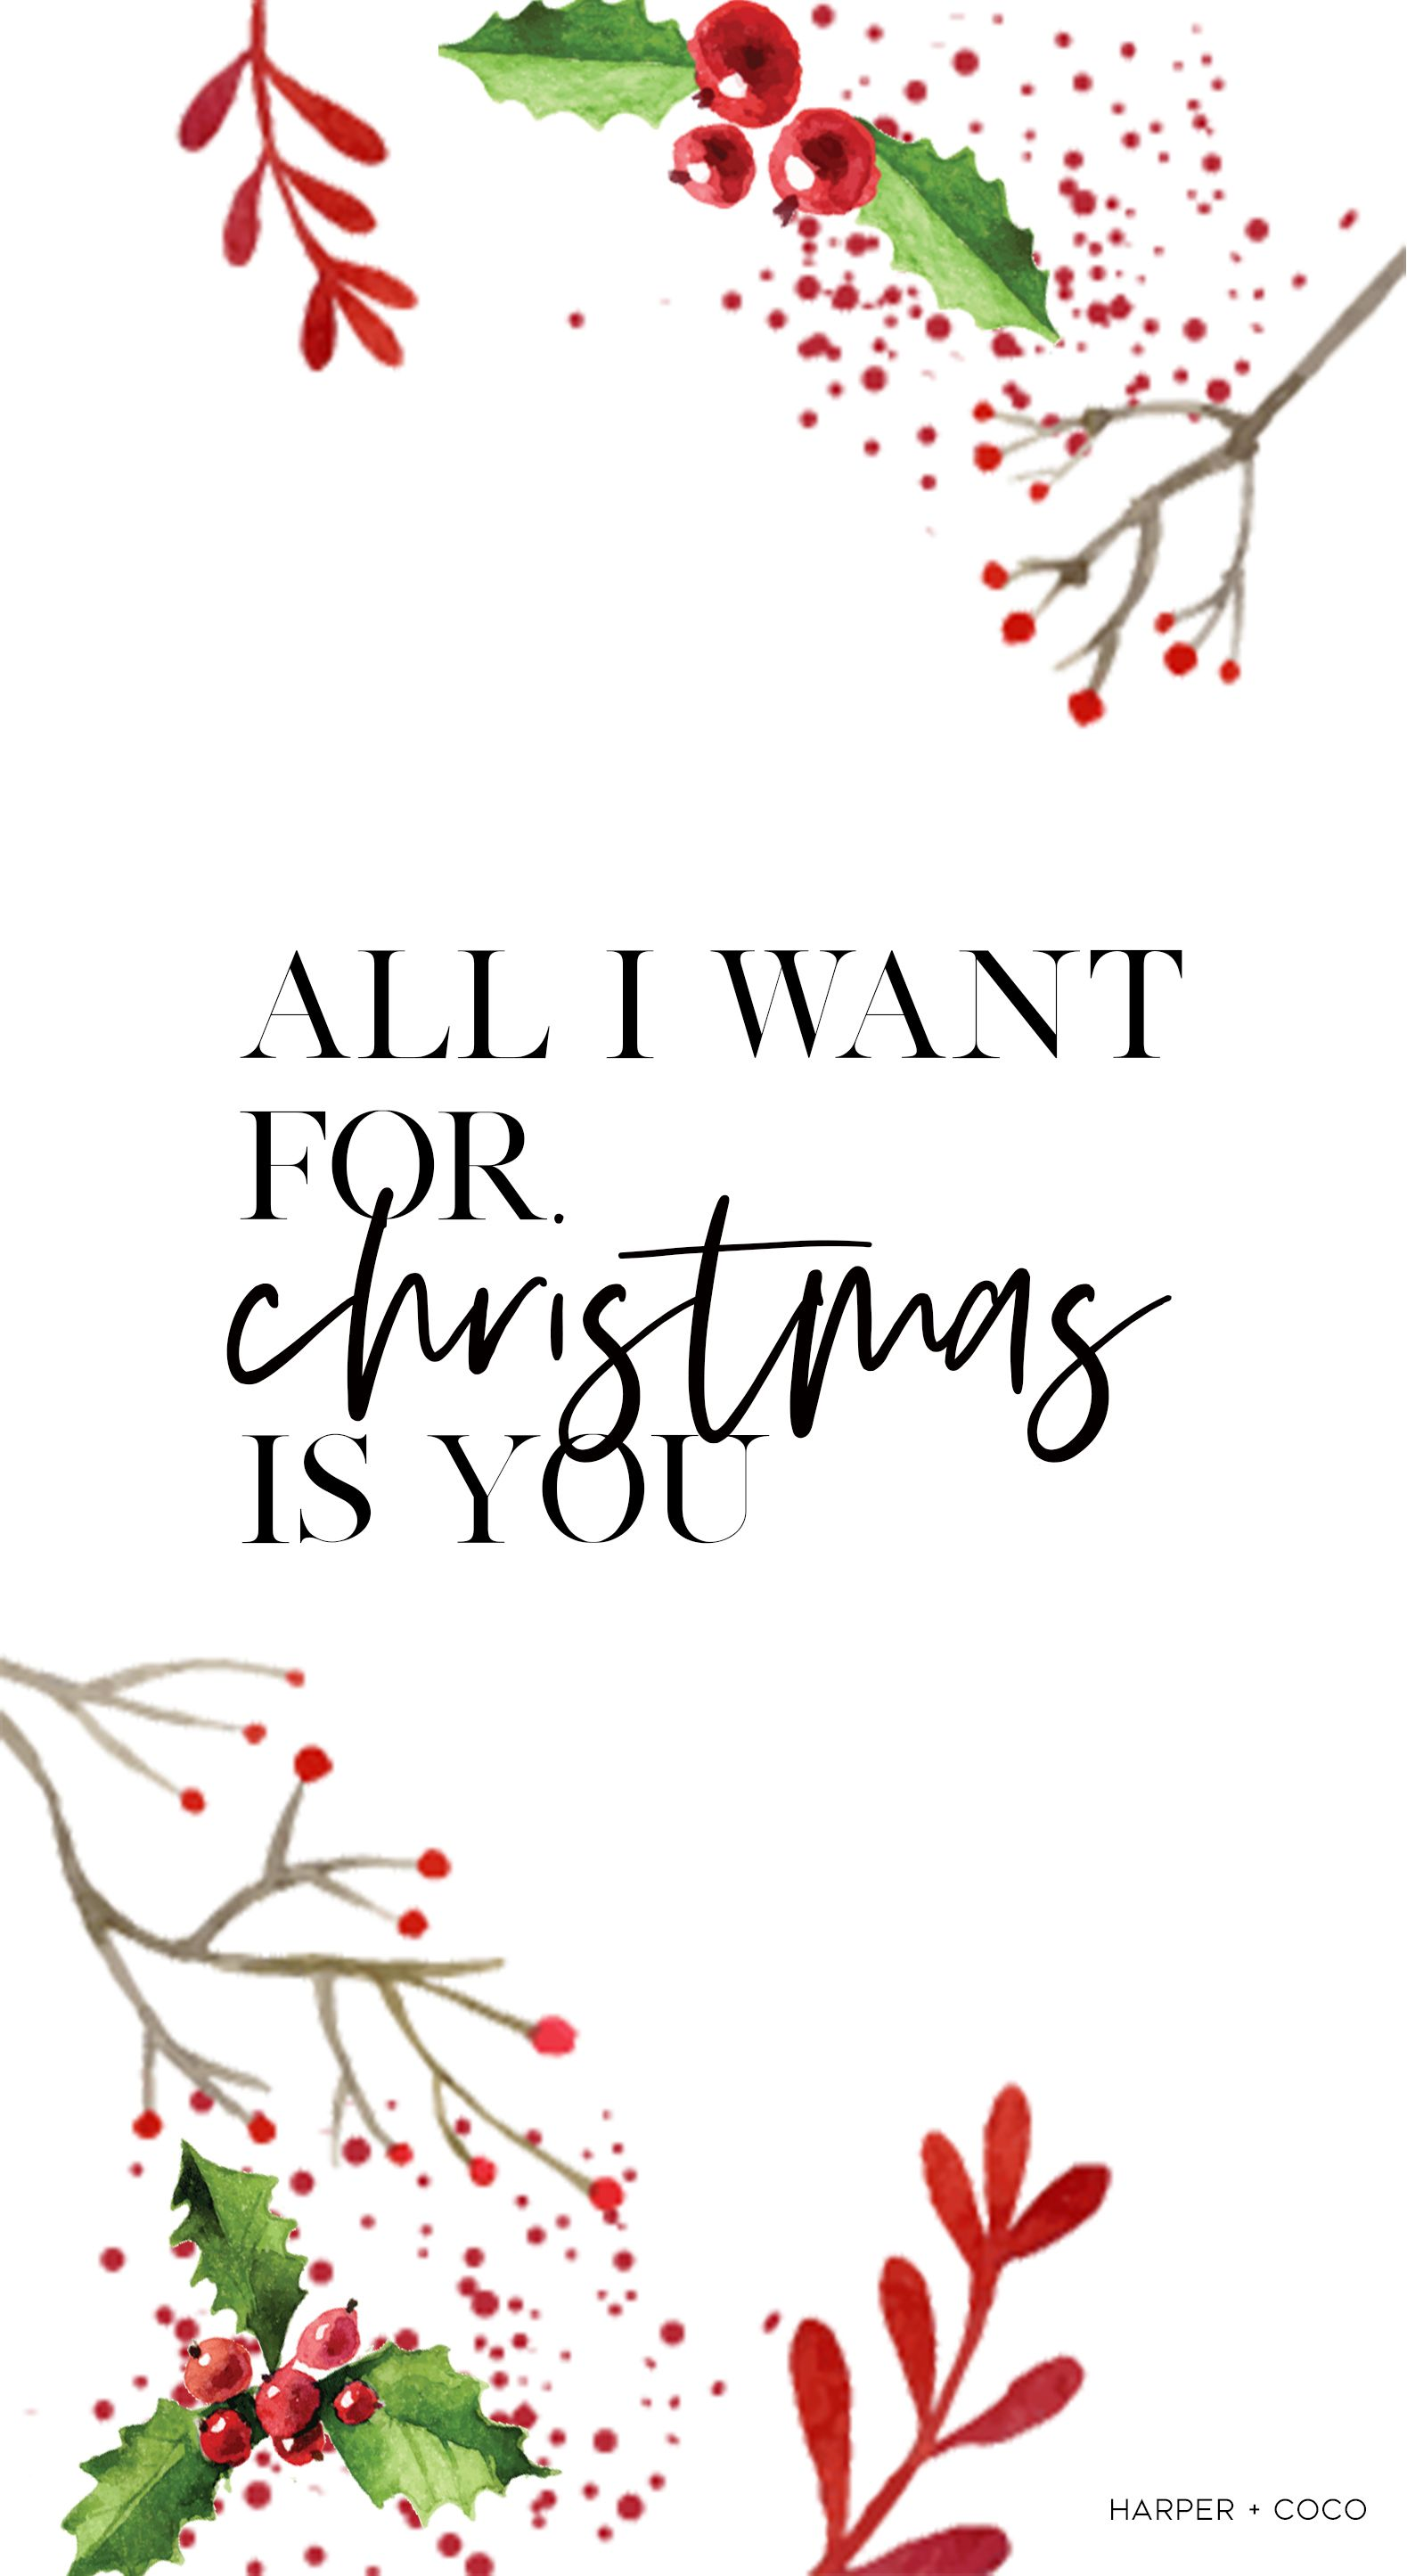 All I Want For Christmas Is You Christmas Wallpaper Redchristmas Christmasw Wallpaper Iphone Christmas Christmas Wallpaper Backgrounds Christmas Wallpaper